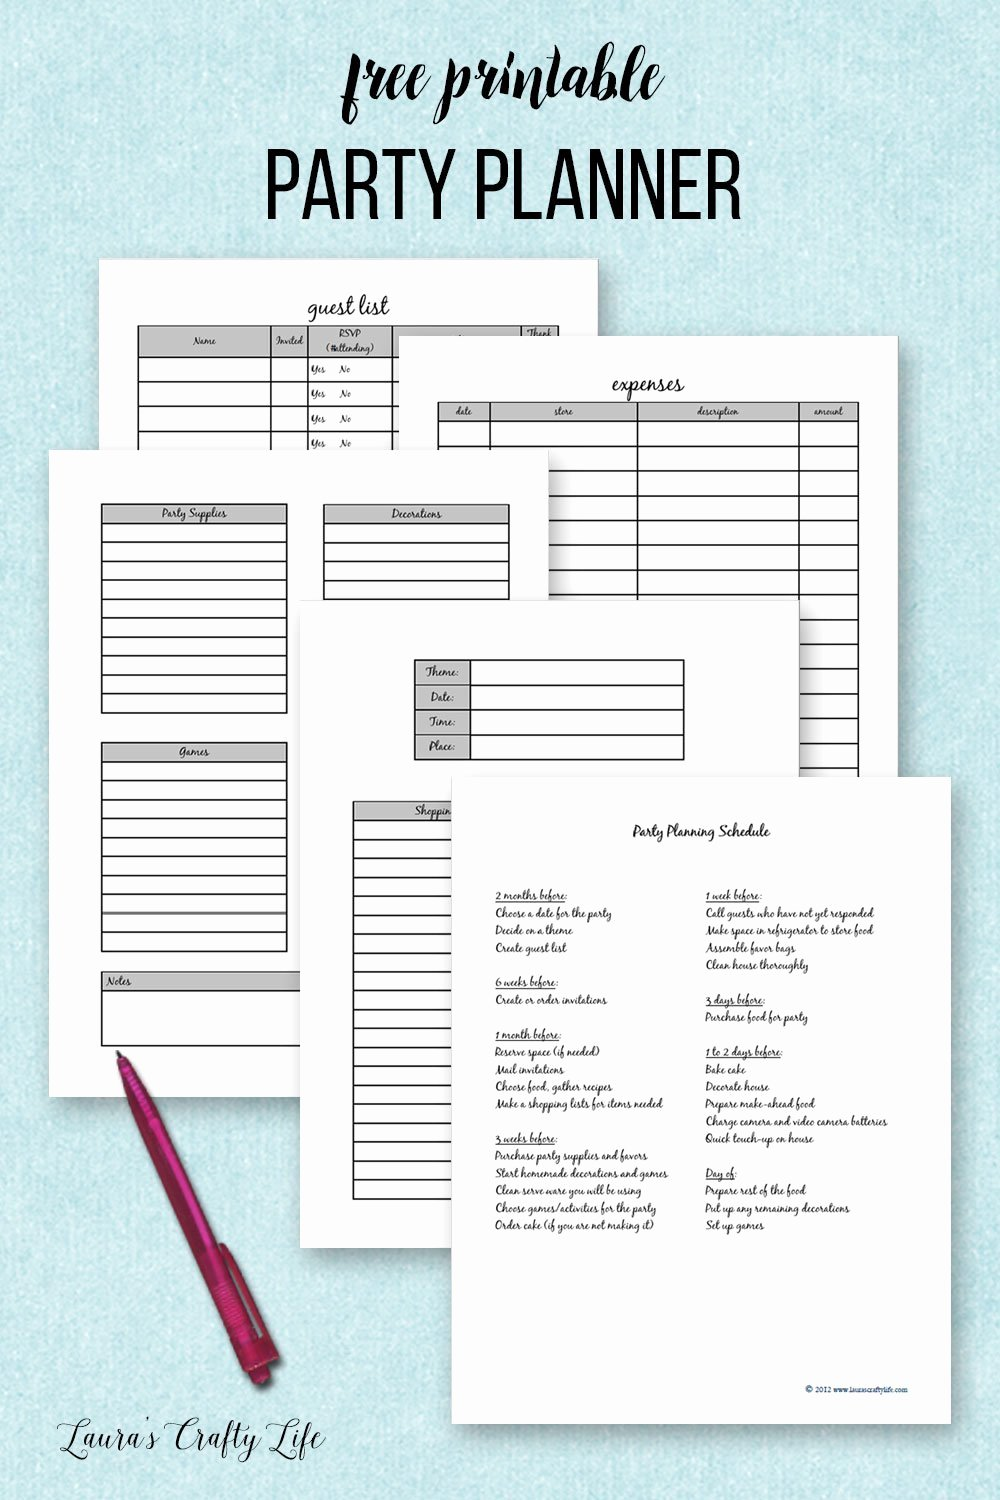 Free event Planner Template Fresh Party Planner Printable Laura S Crafty Life